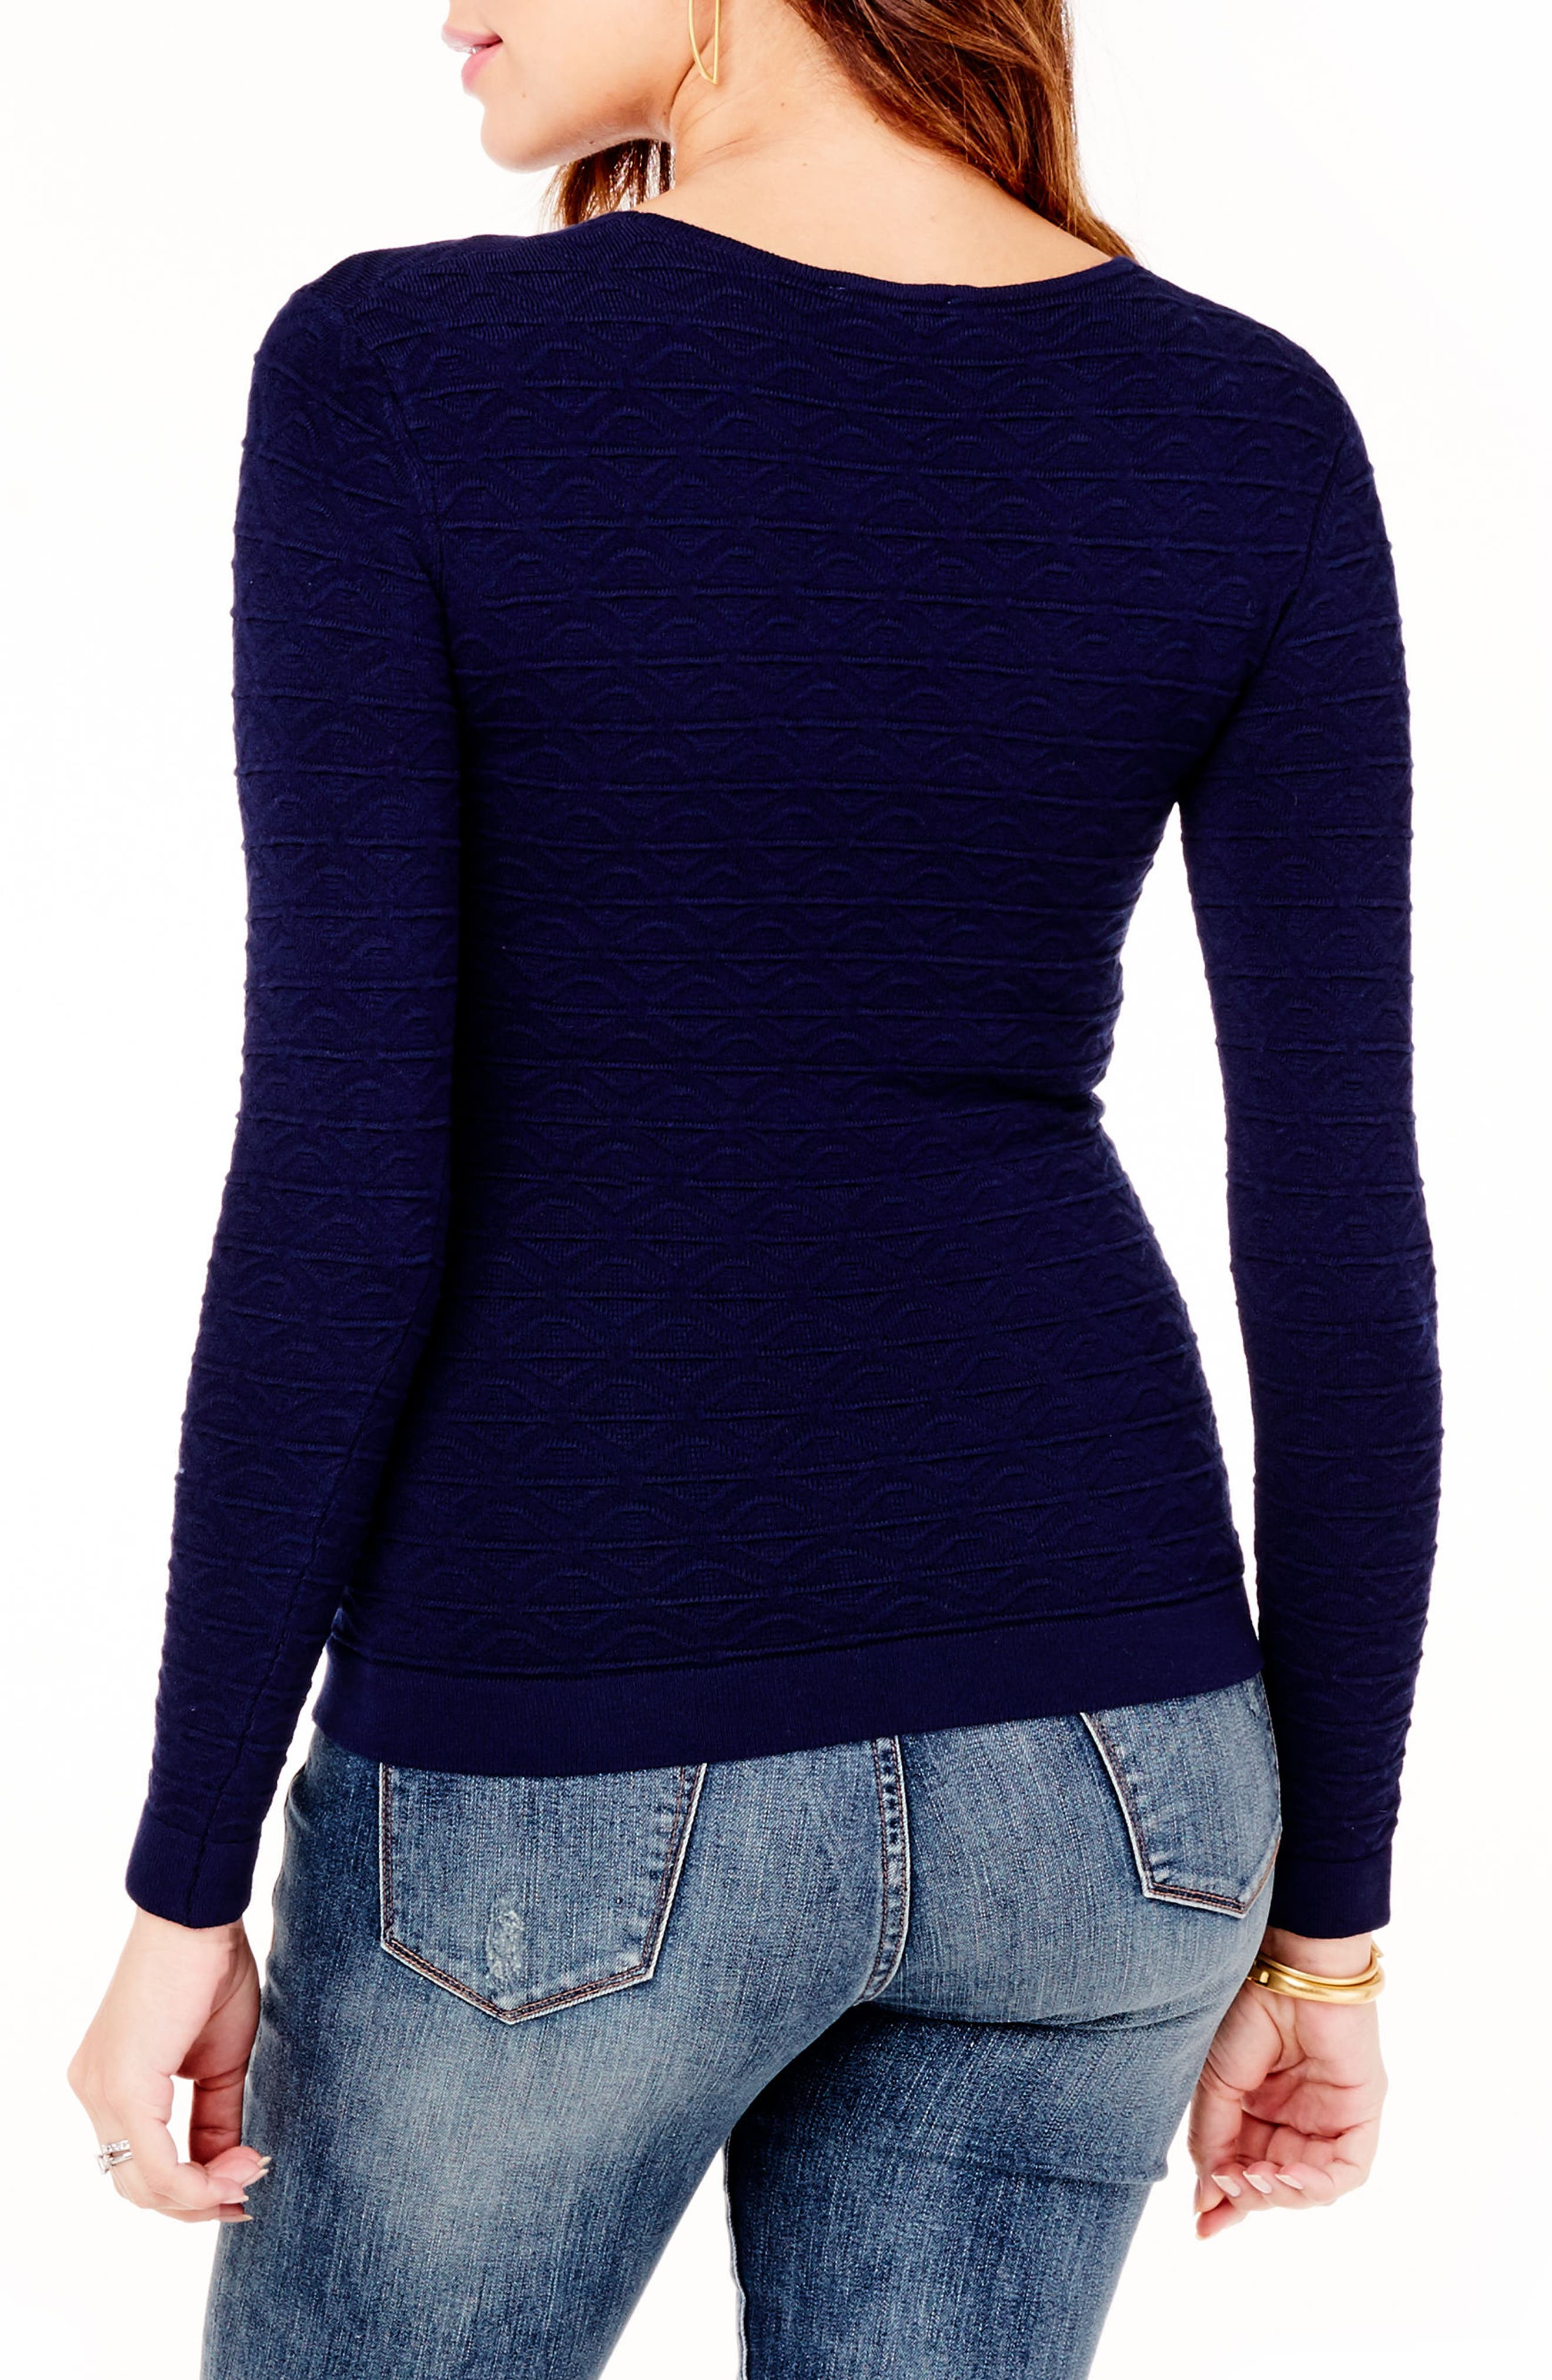 Ingrid & Isabel Textured Knit Maternity Sweater,                             Alternate thumbnail 2, color,                             TRUE NAVY